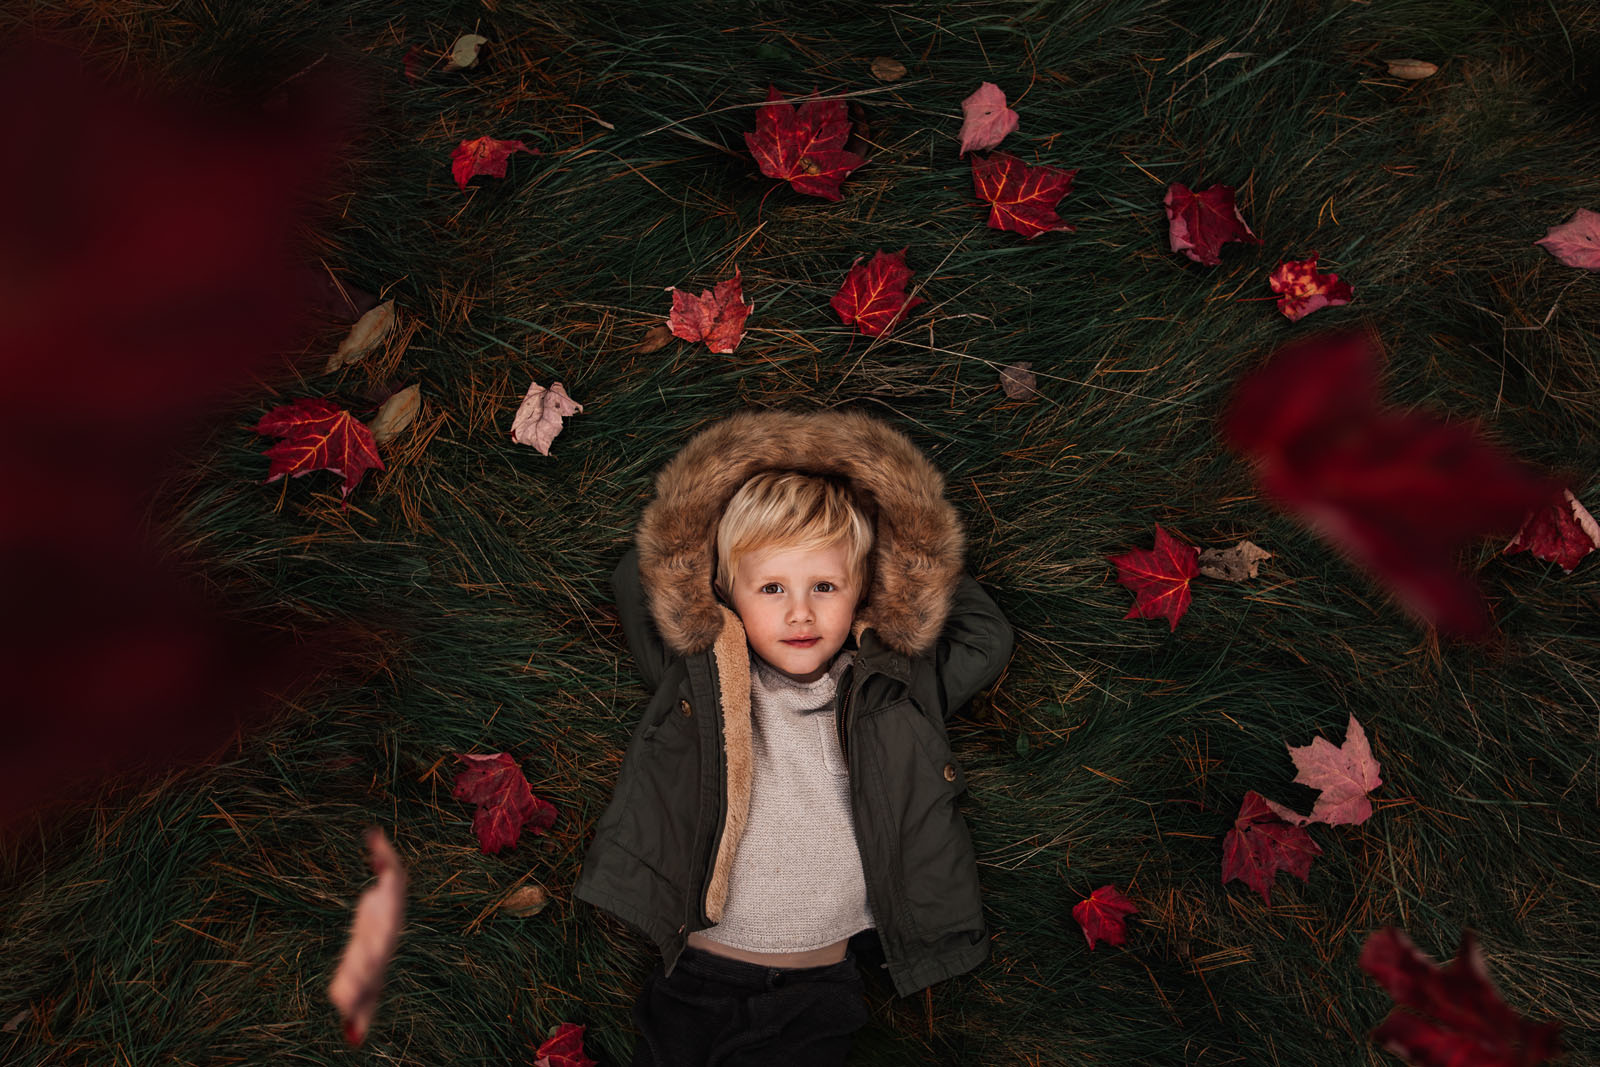 megloeks_image18 child laying in grass among red autumn leaves fall activities by meg loeks